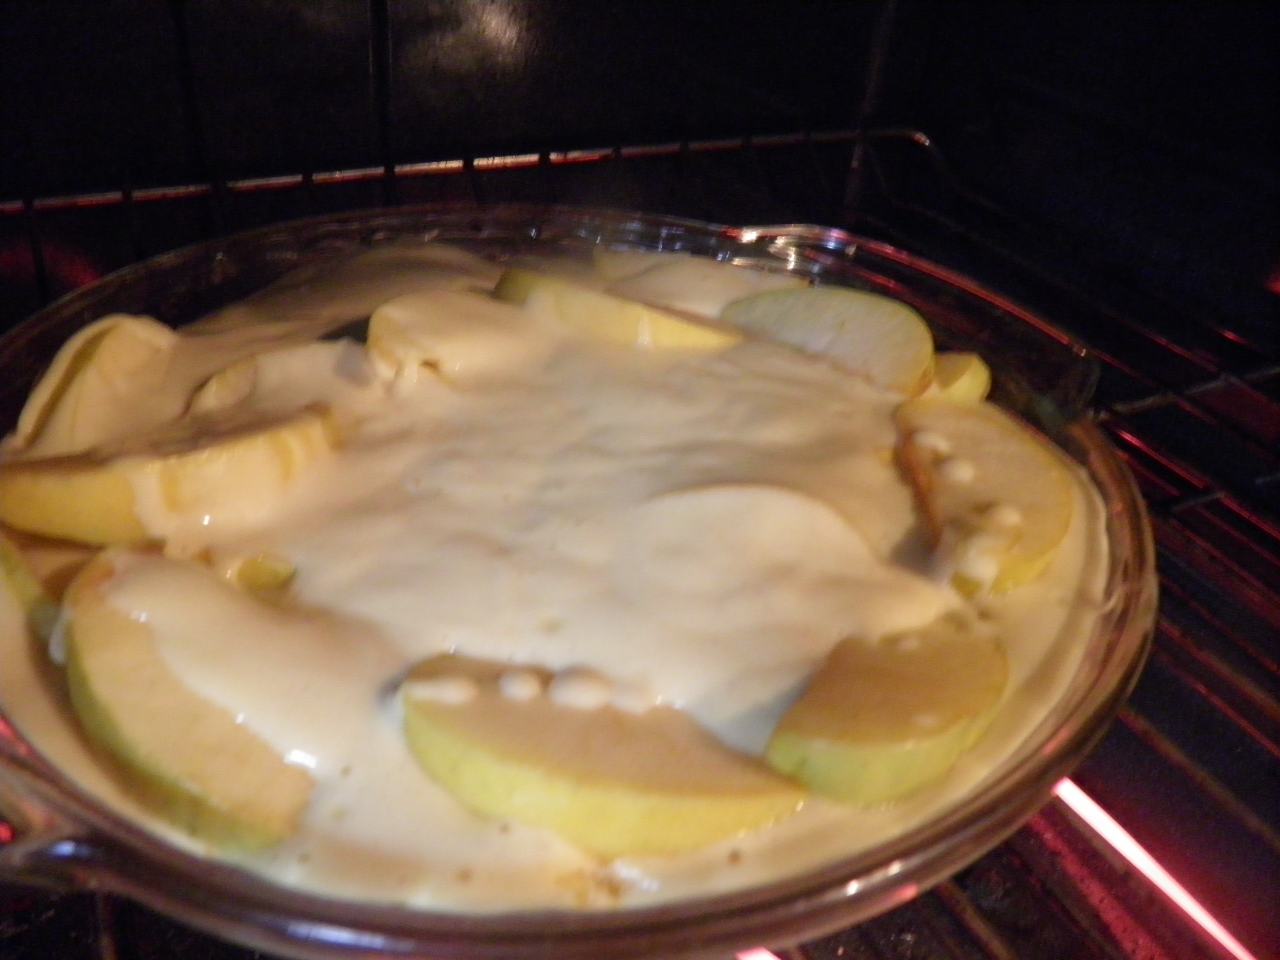 Gluten Free Clafoutis in the oven